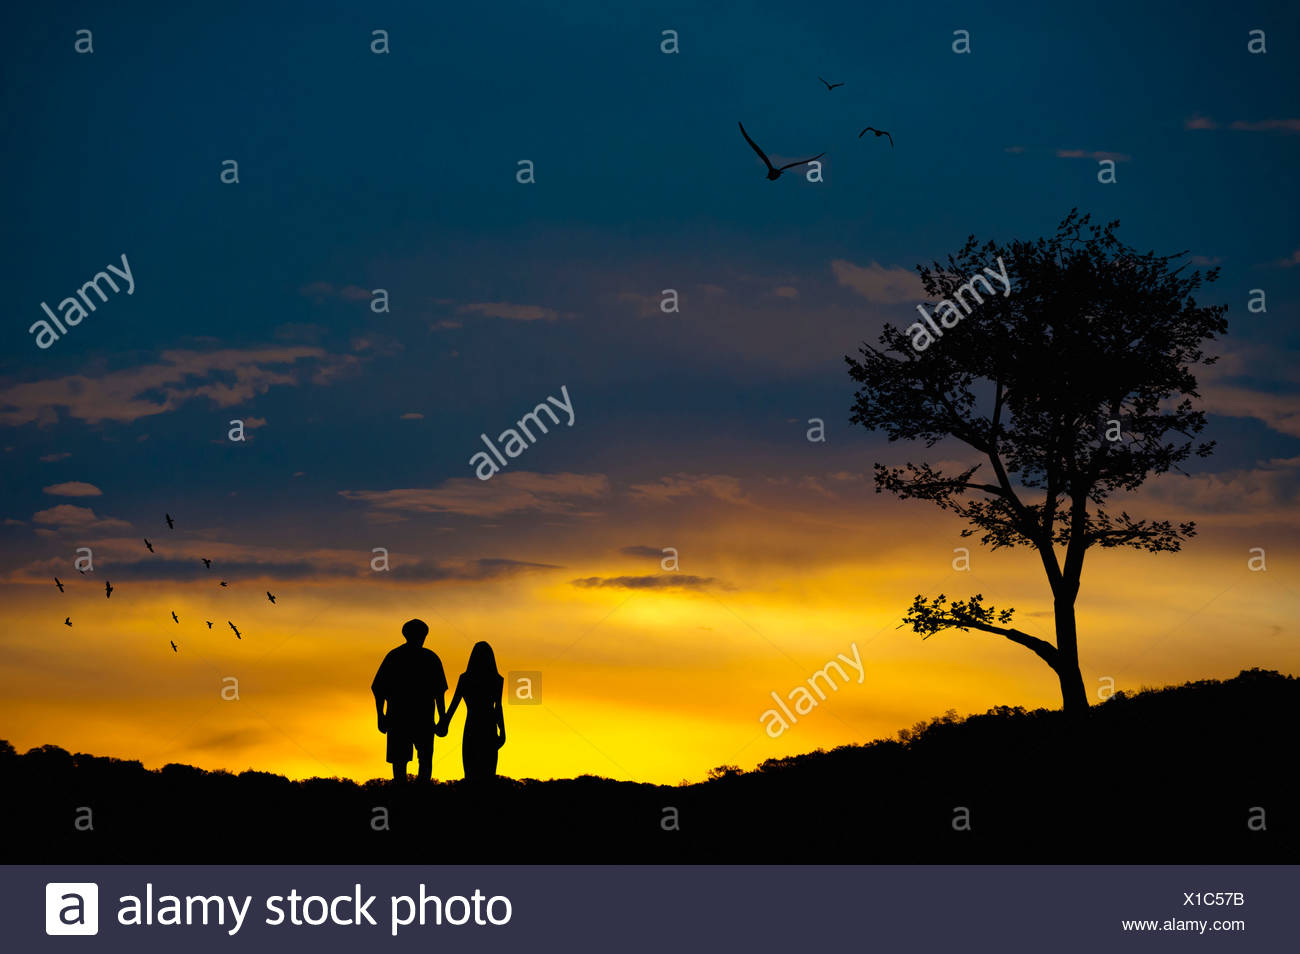 Couple in love at romantic landscape - Stock Image